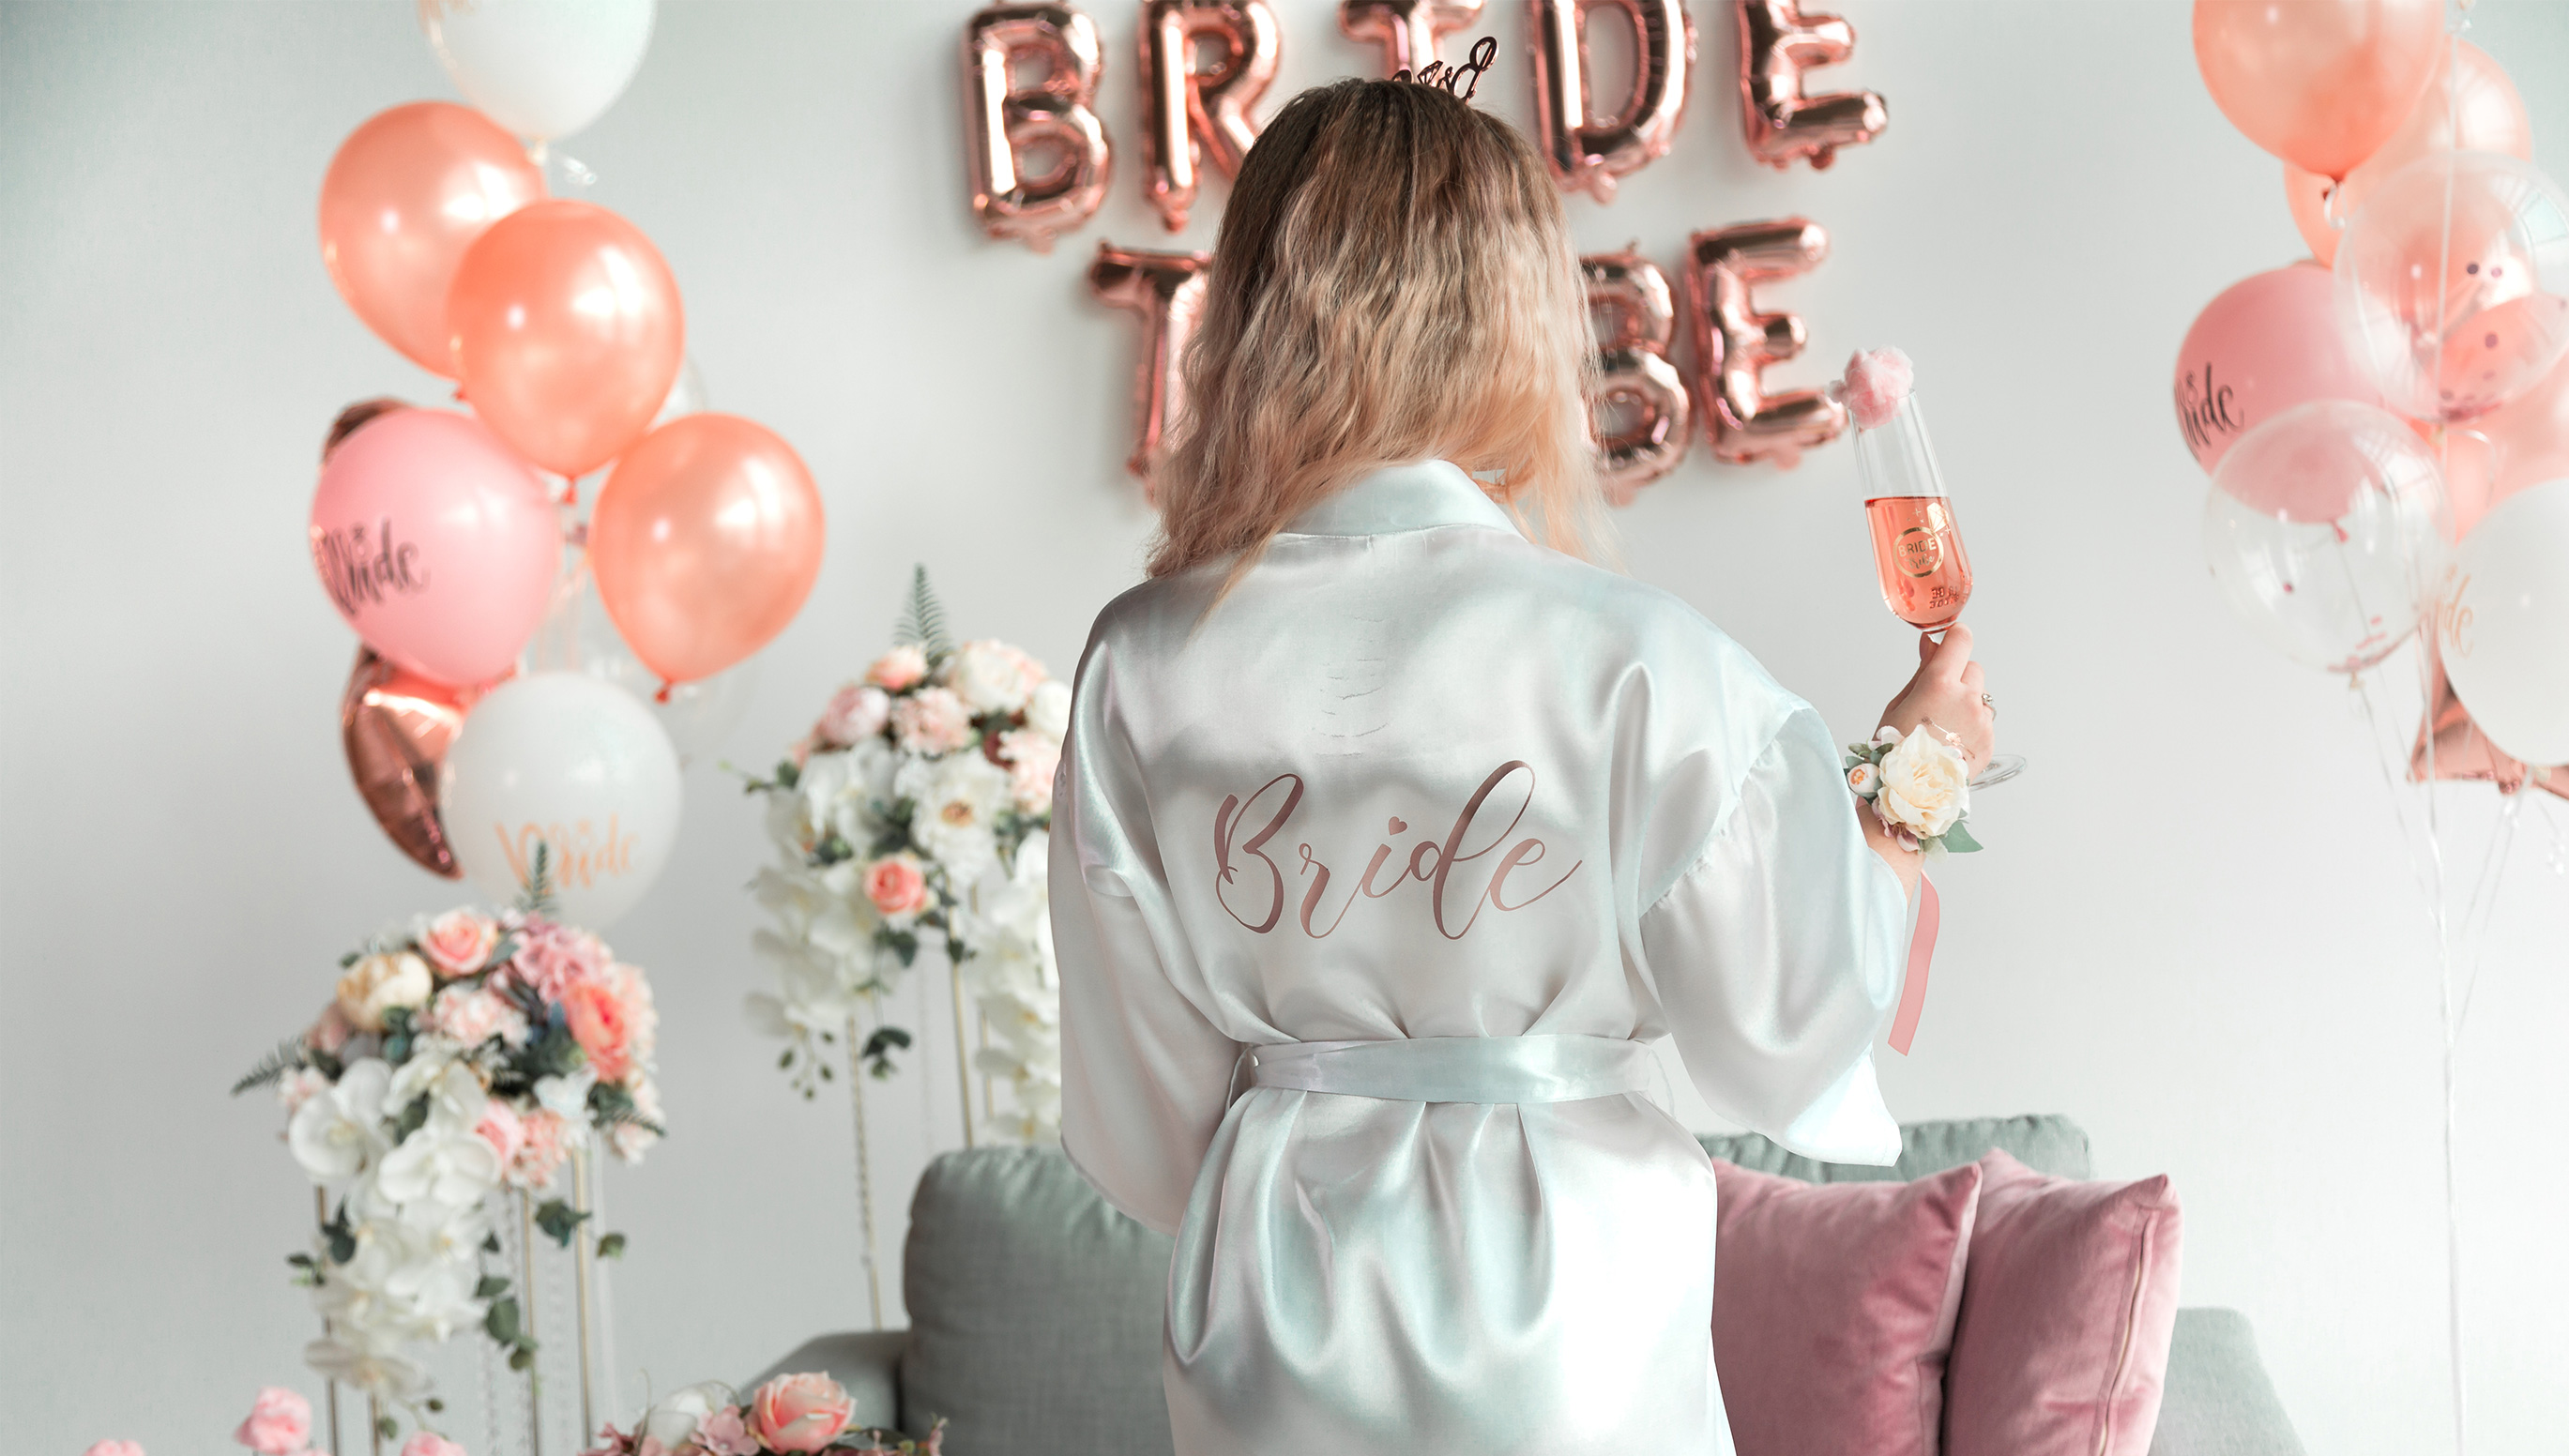 HFlower Decorating Ideas for Your Bachelorette Party